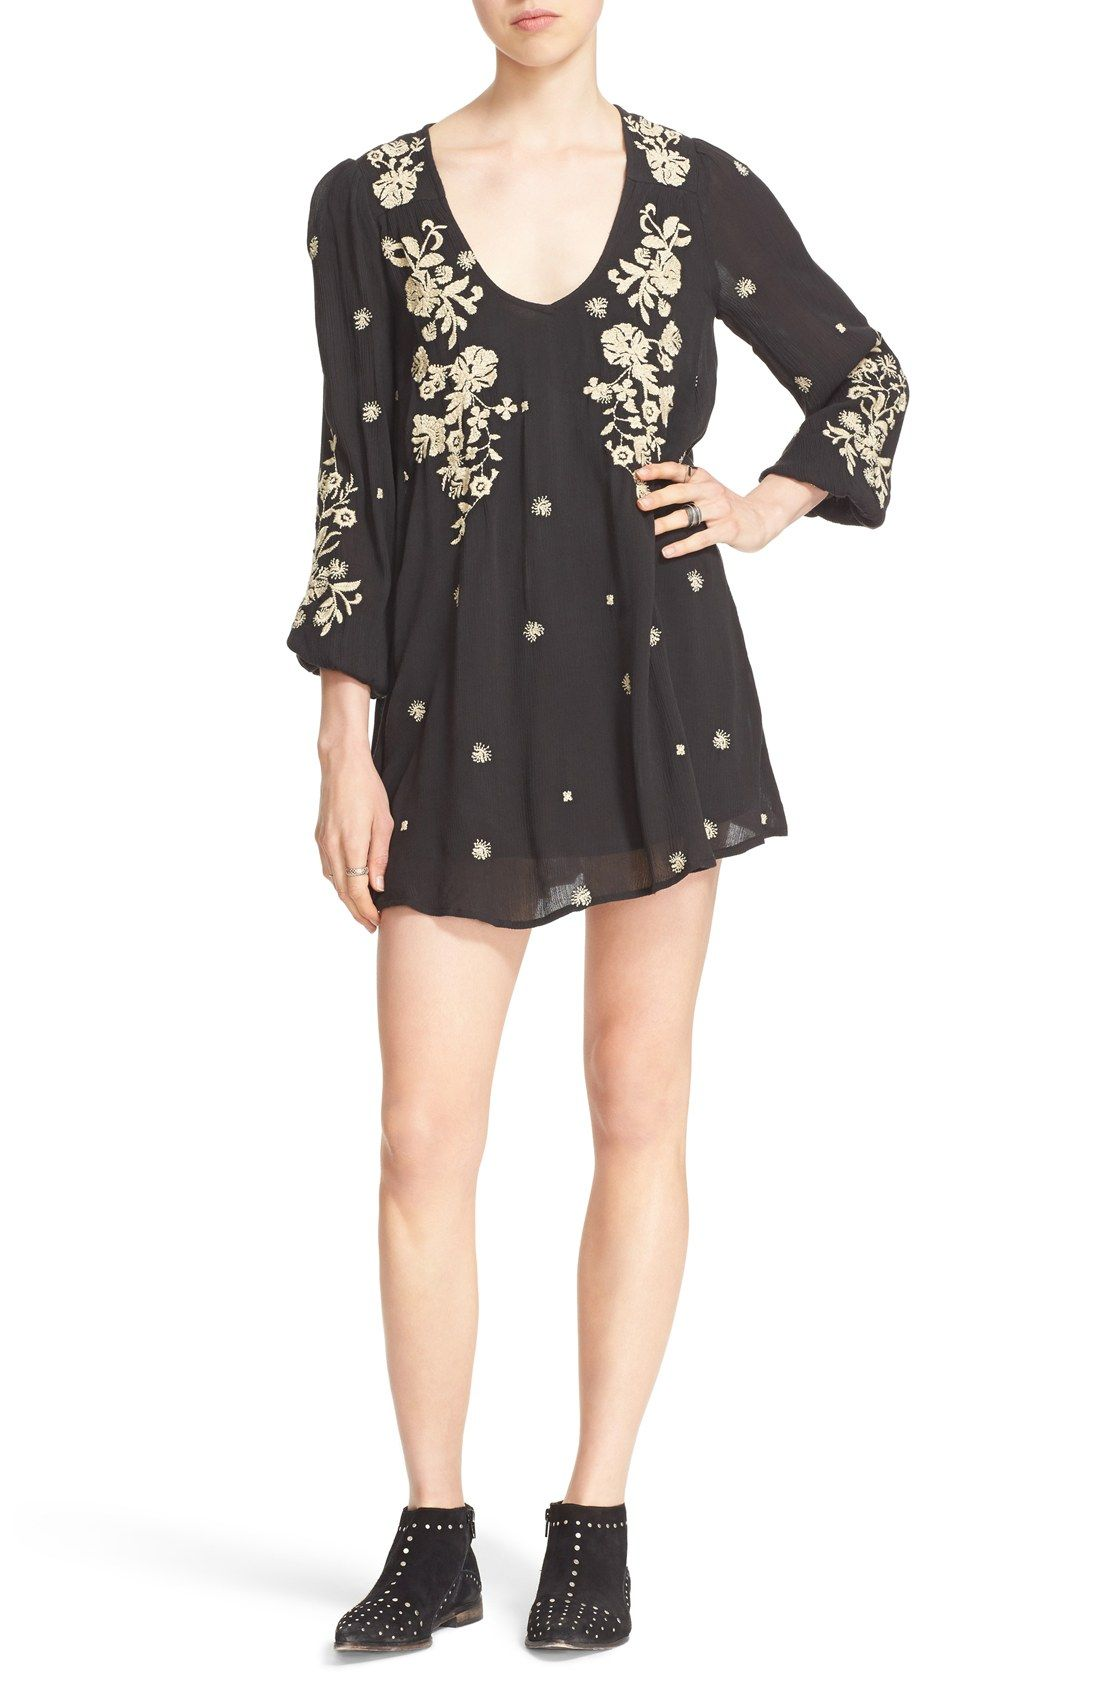 'Sweet Tennessee' Embroidered Minidress